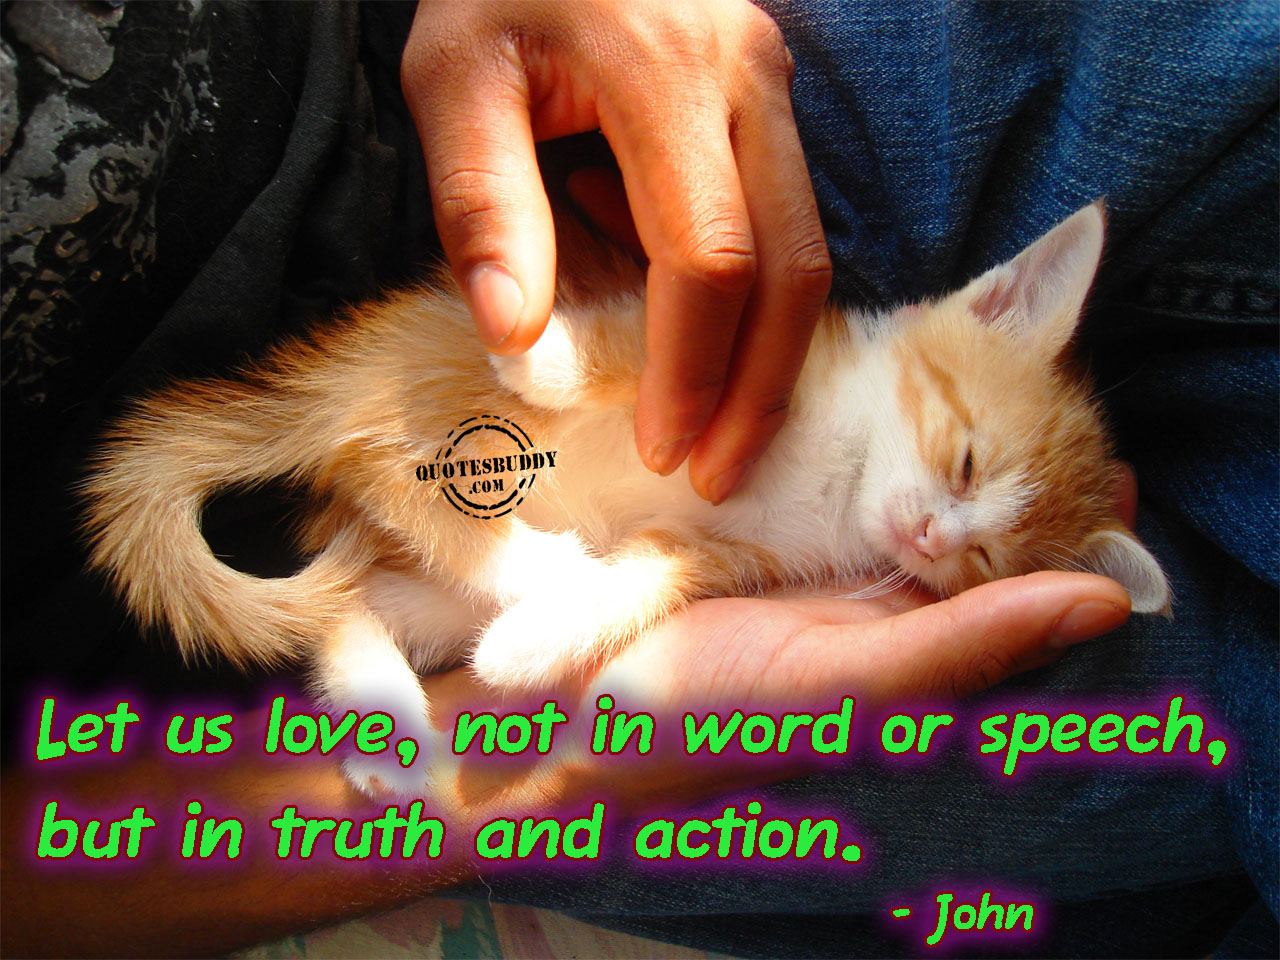 let-us-love-not-in-word-or-speech-but-in-the-truth-and-action-bible-quote